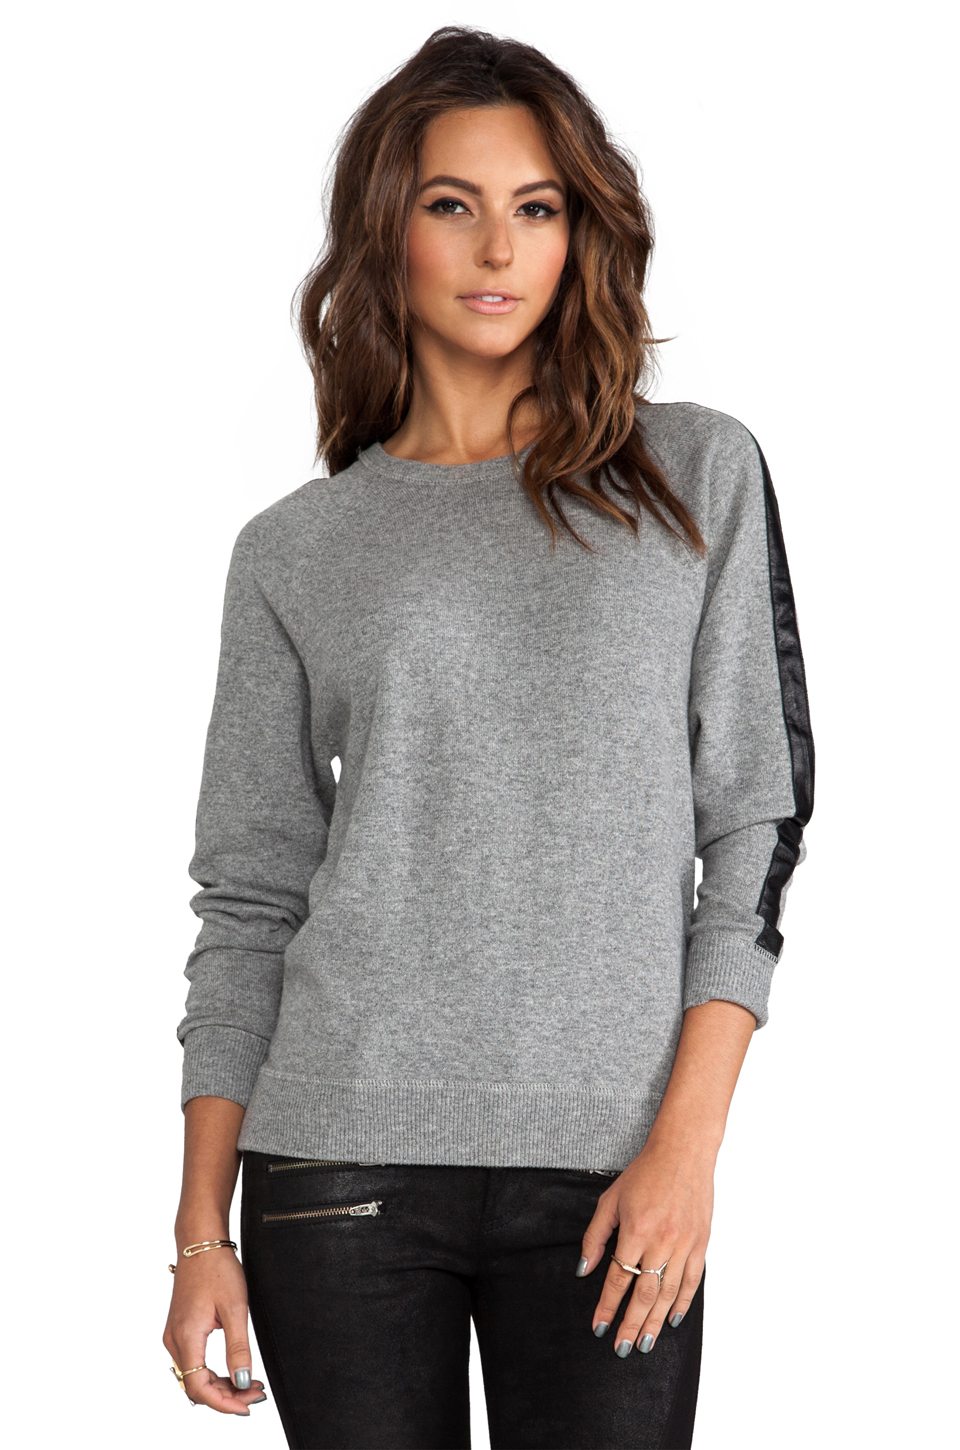 Autumn Cashmere Sweatshirt With Leather Trim in Cement/Black